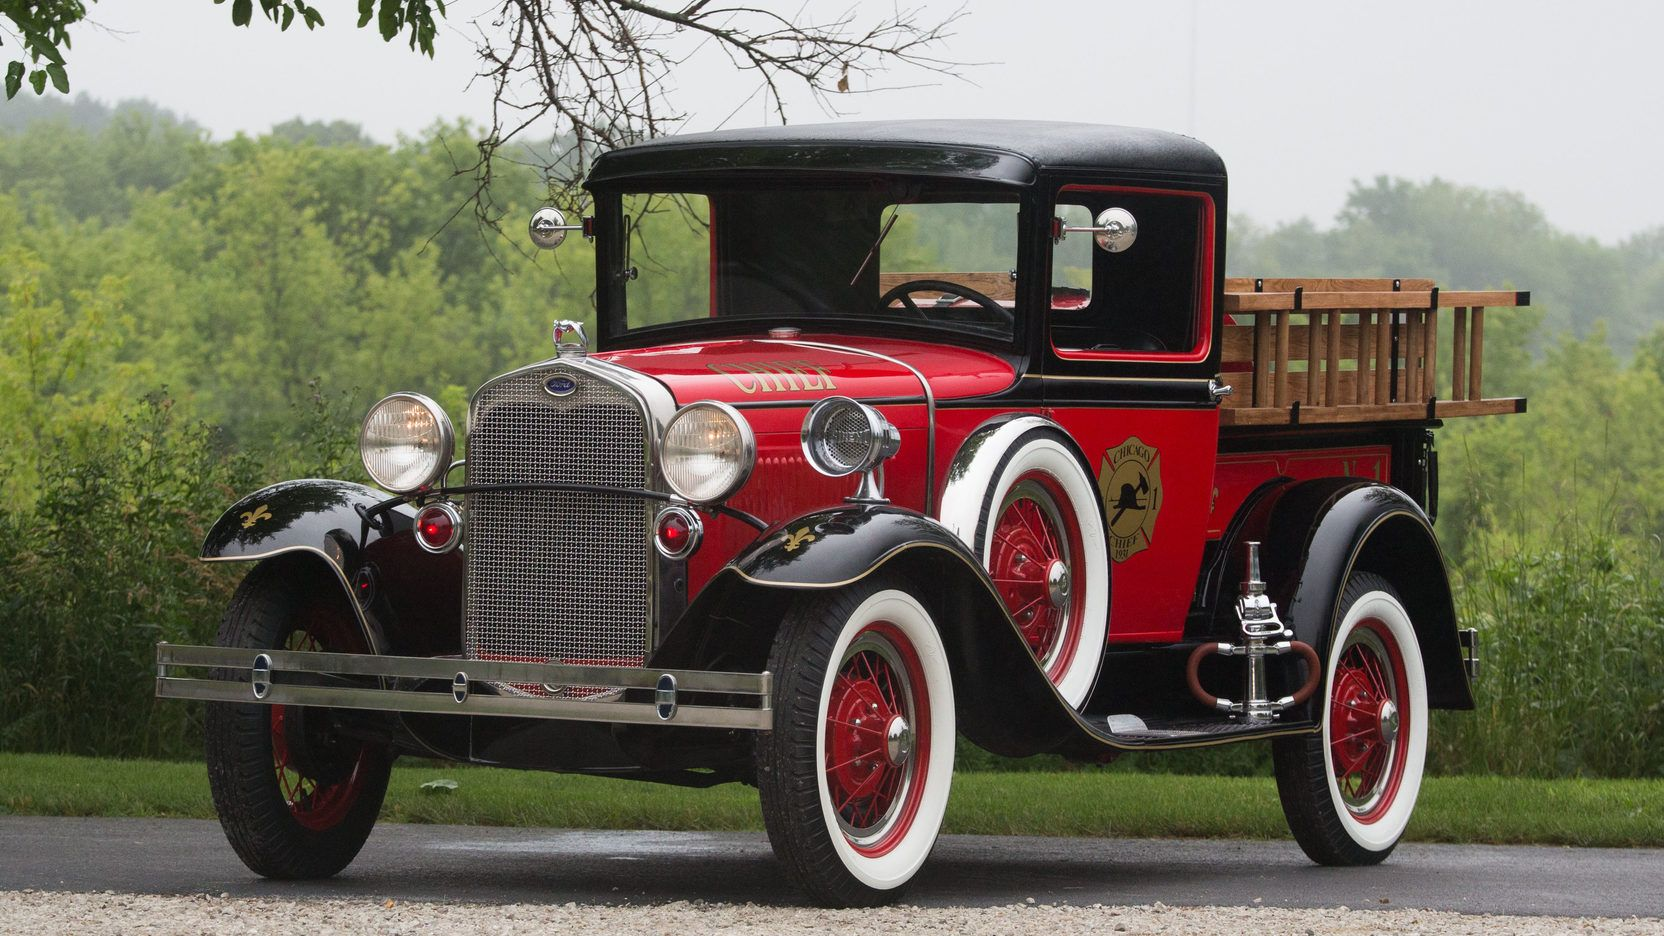 1930 Ford Model A Fire Truck presented as Lot S39.1 at Schaumburg ...